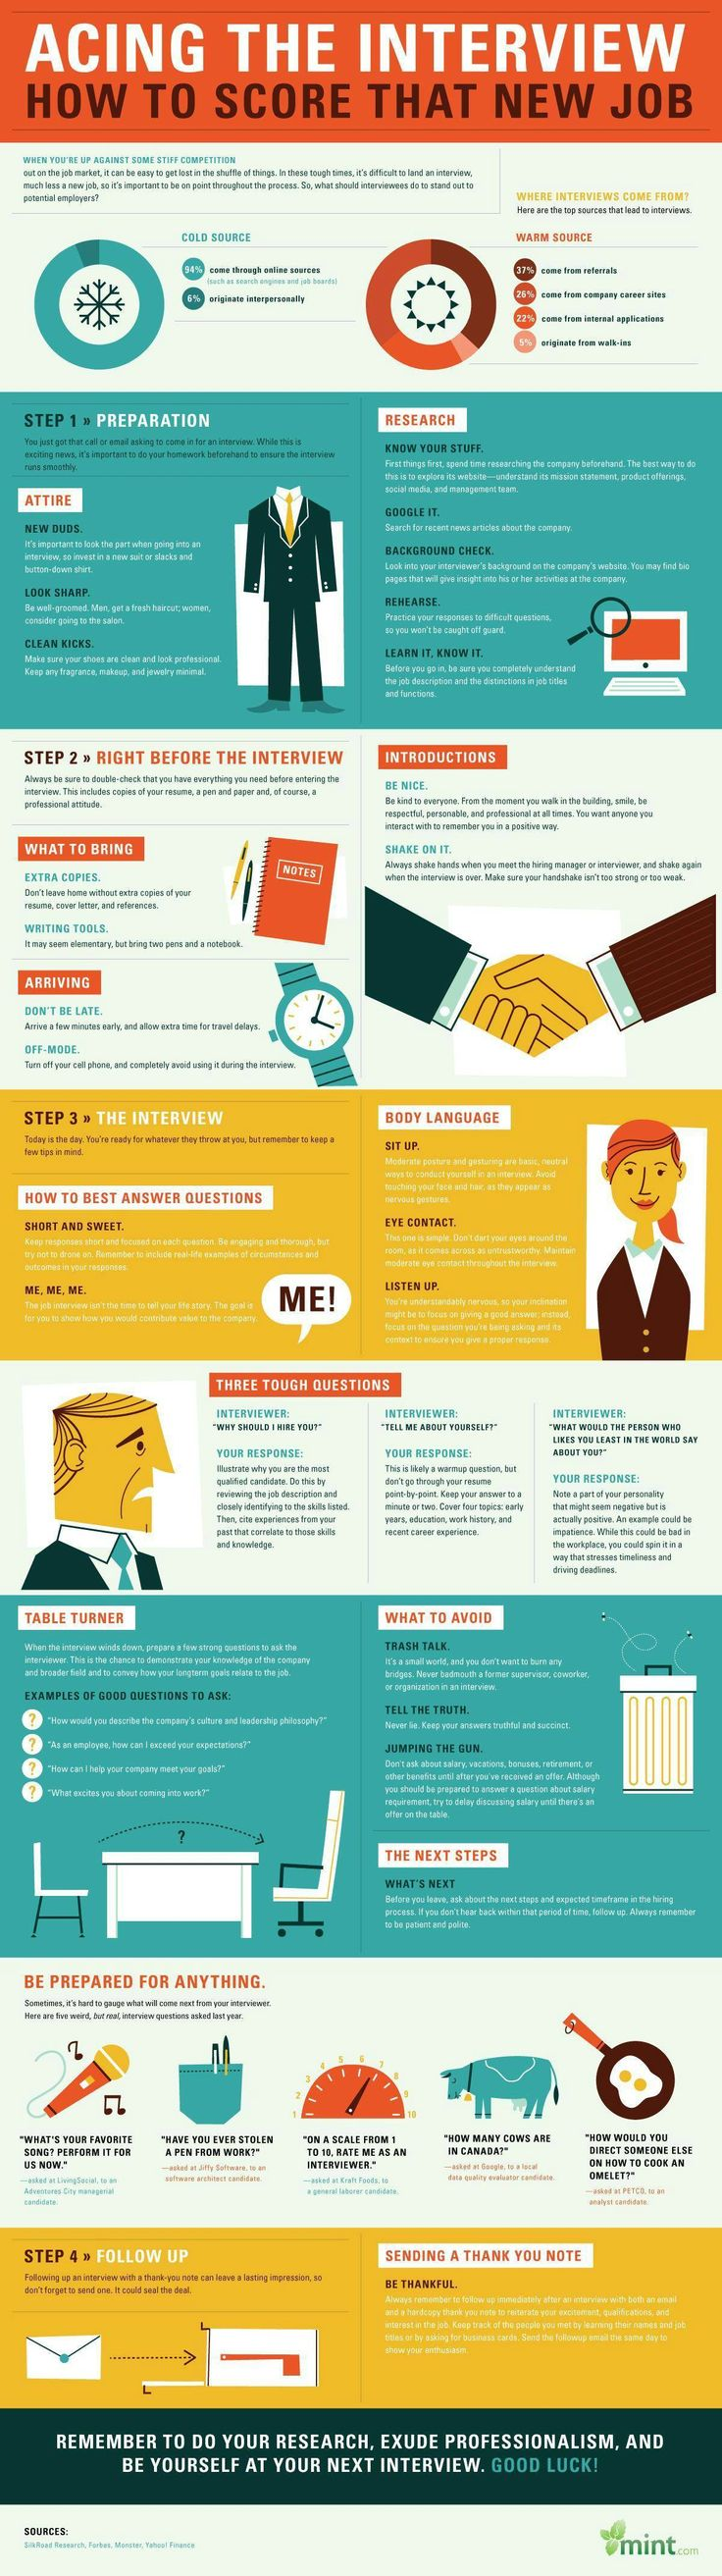 Know your stuff and ace that DREAM JOB with these helpful interview tips. You'll thank us later.